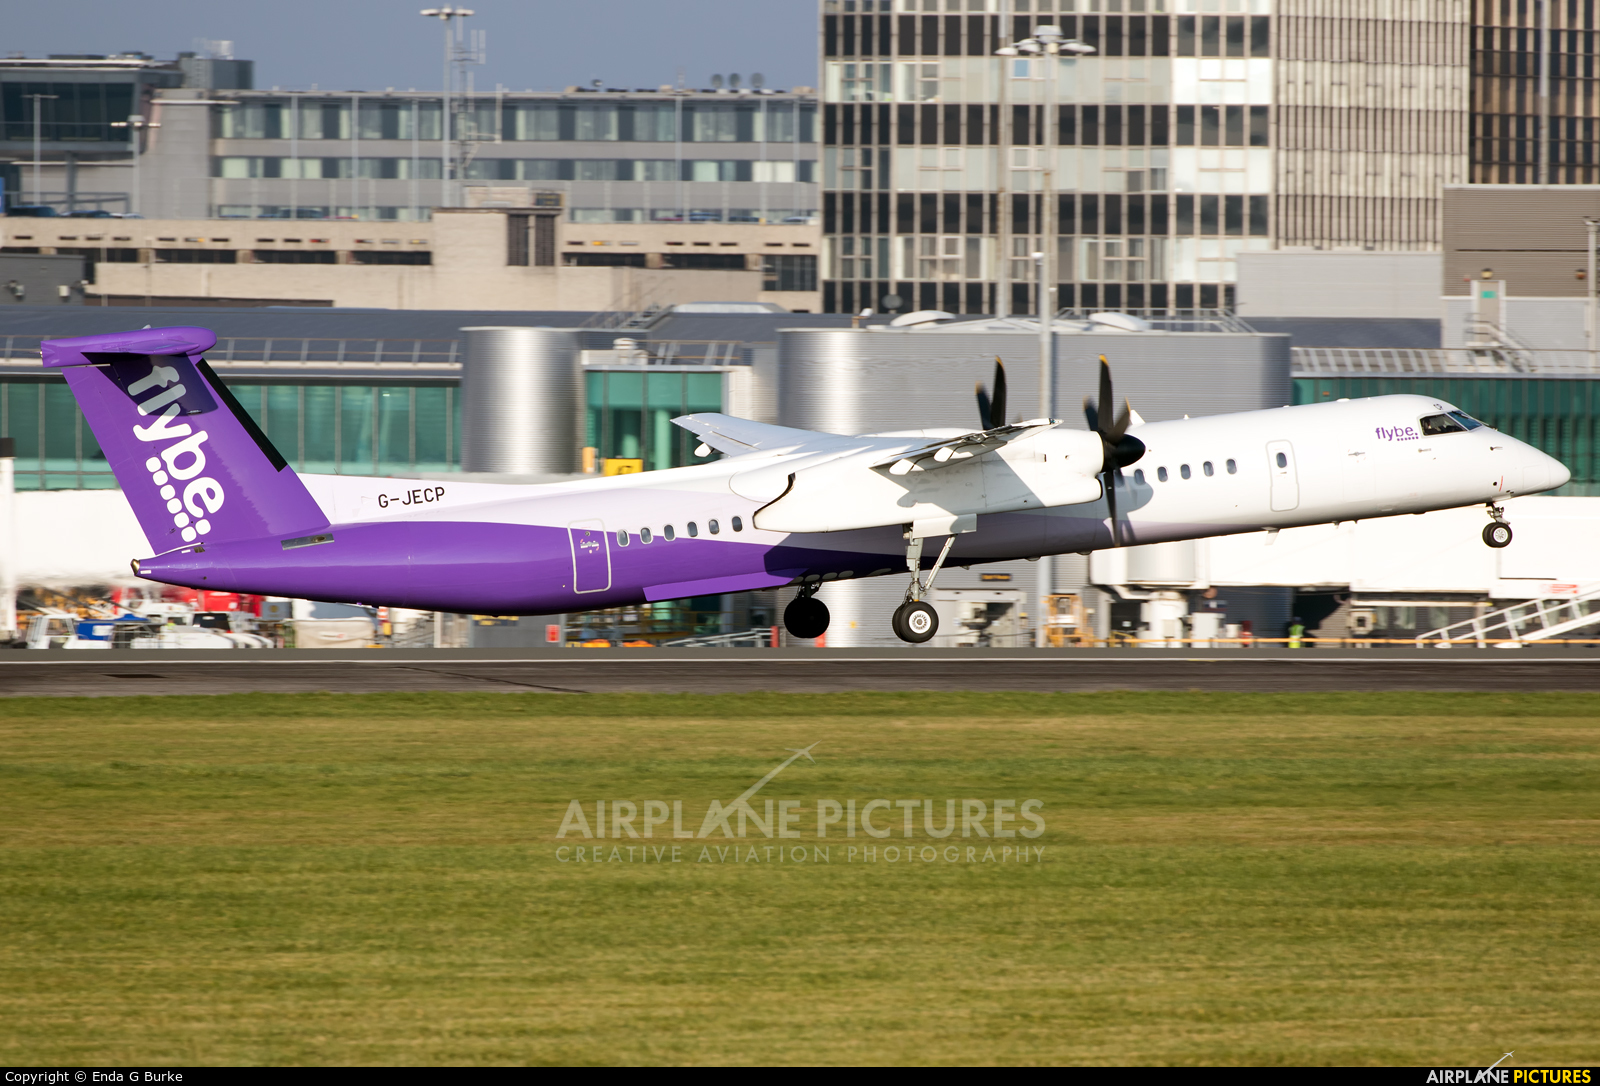 Flybe G-JECP aircraft at Manchester